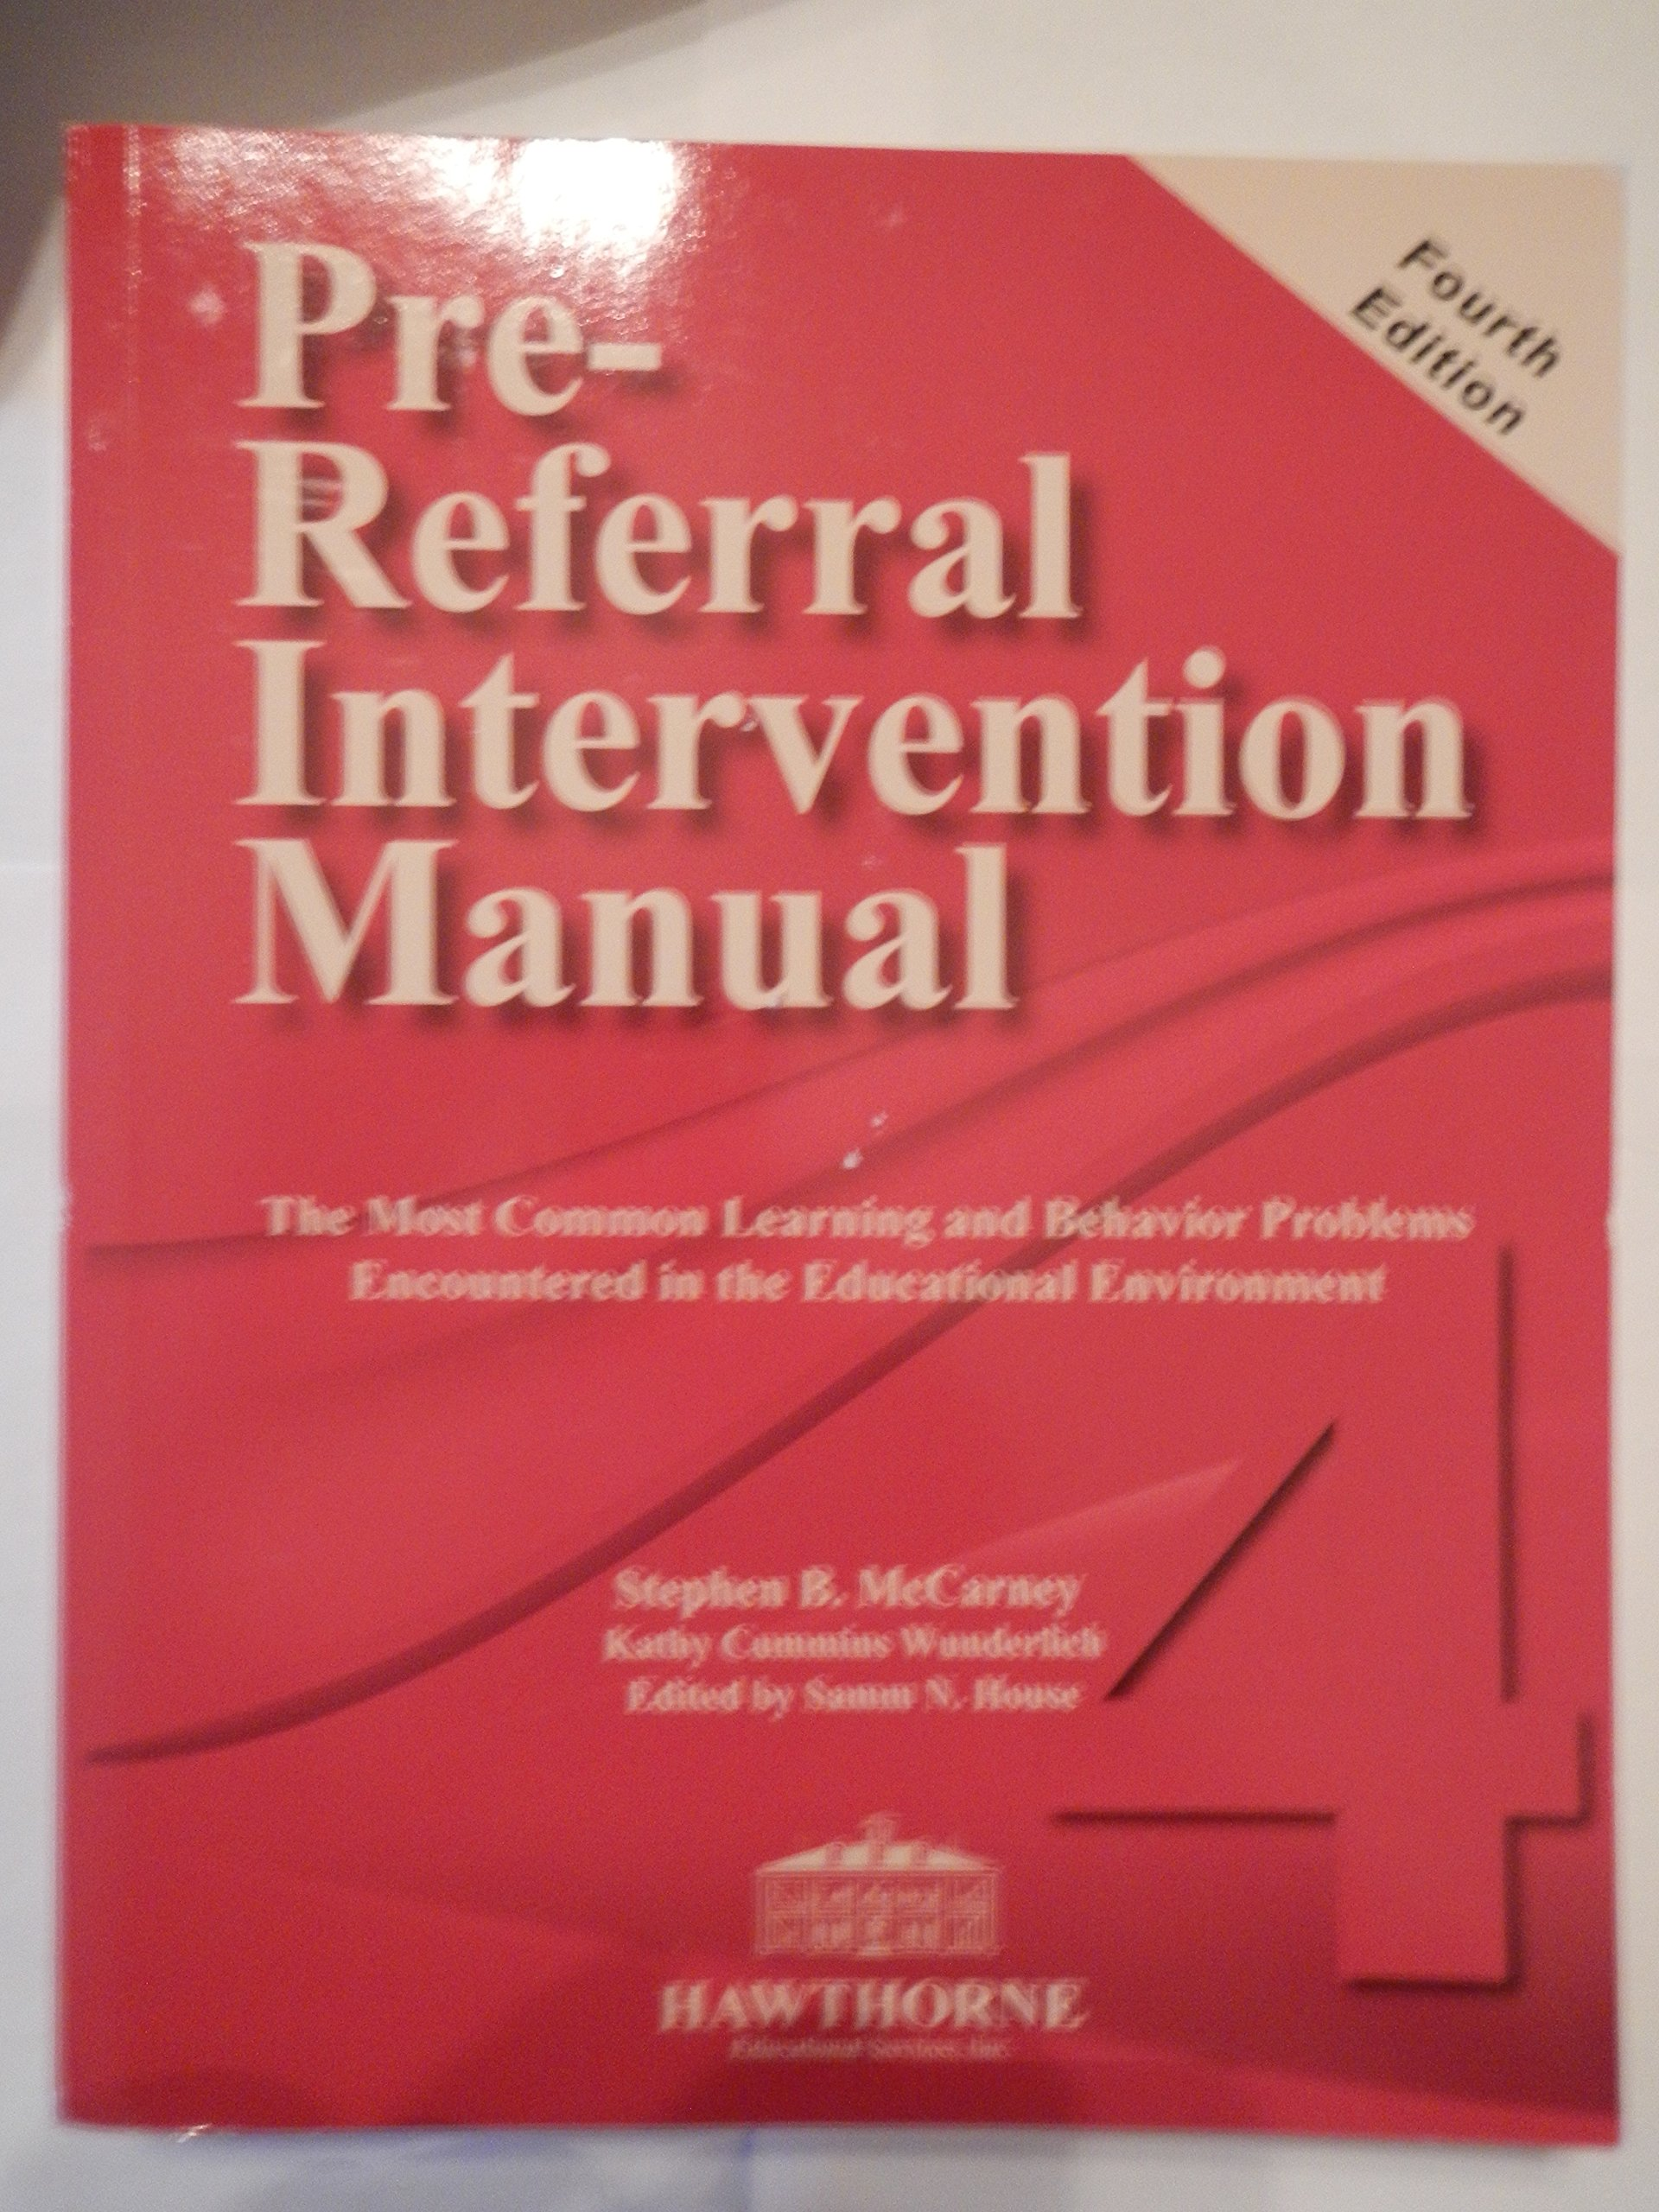 Mc service manual 28 ebook array pre referral intervention manual fourth edition kathy cummins rh amazon com fandeluxe Image collections